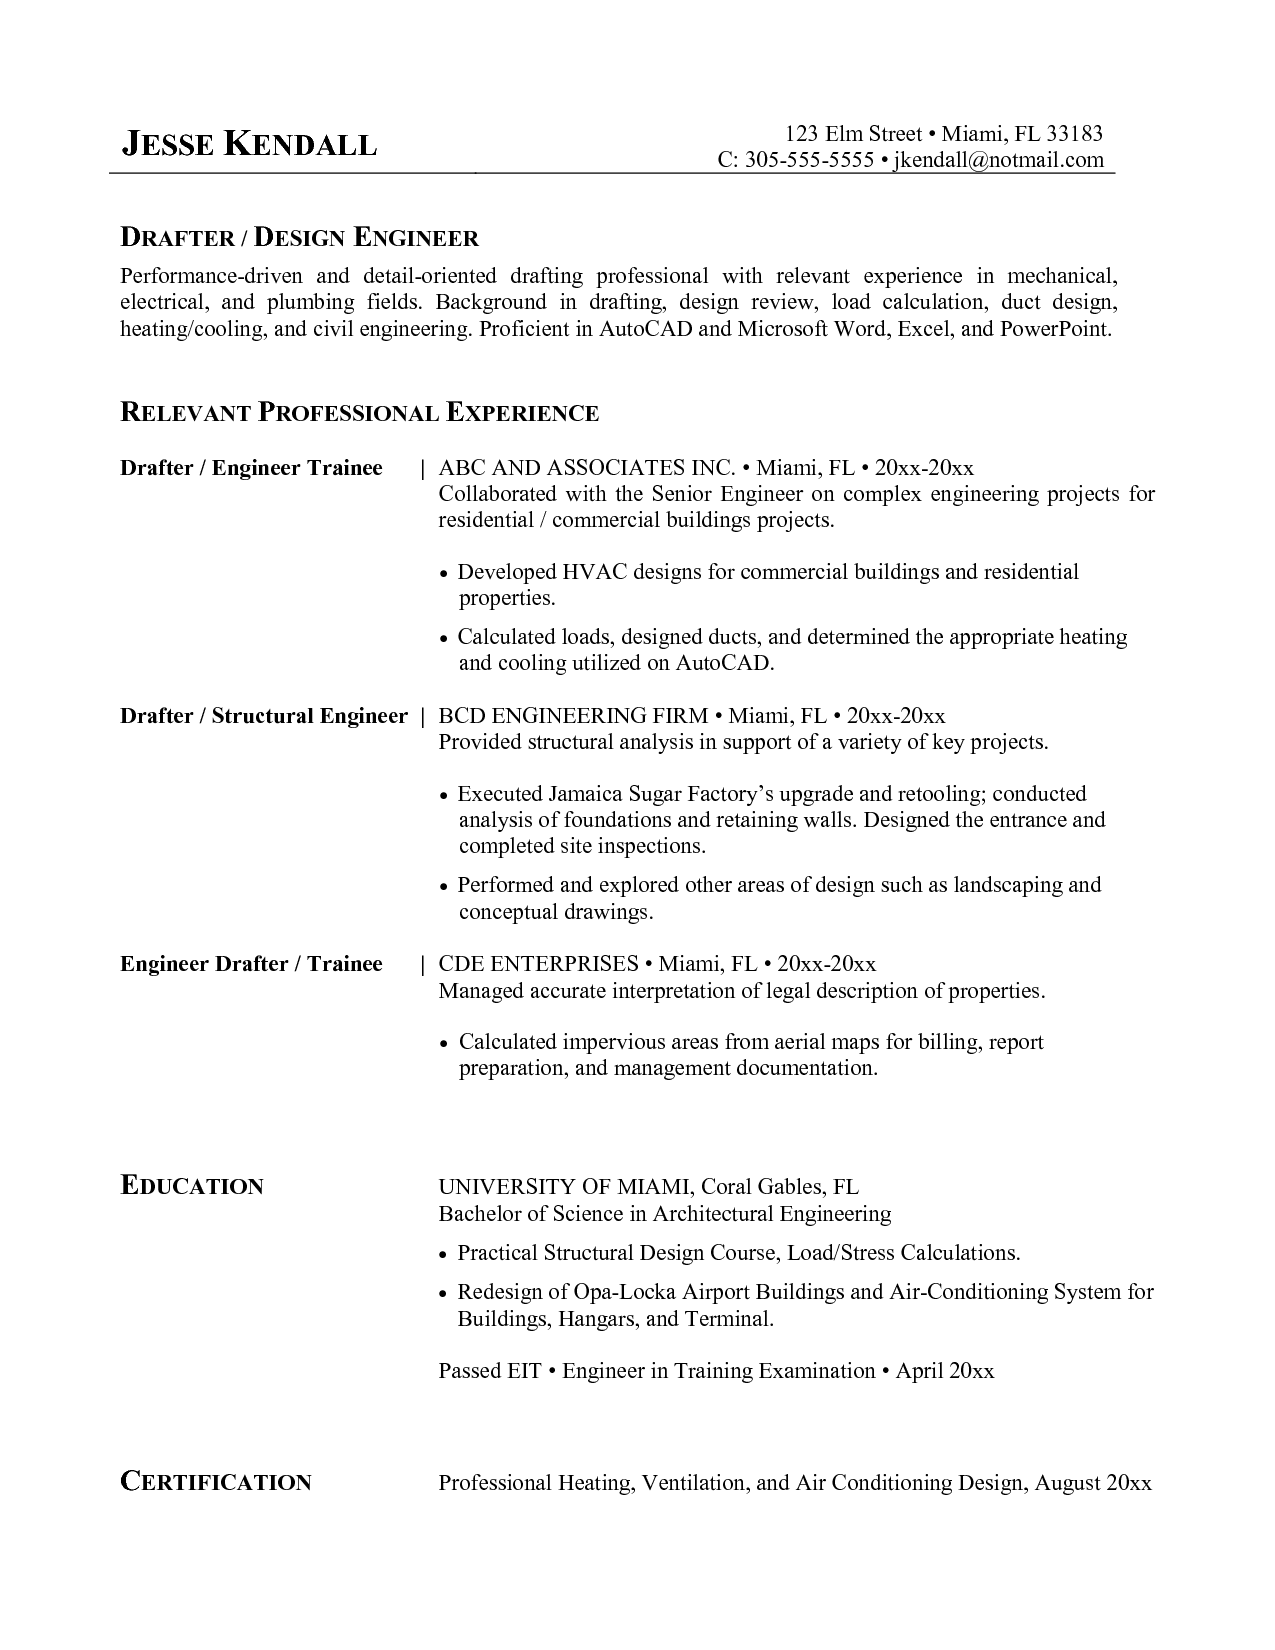 Samples Of Resume Objectives Great Hvac Resume Samplehvac Resume Samples Templateshvac